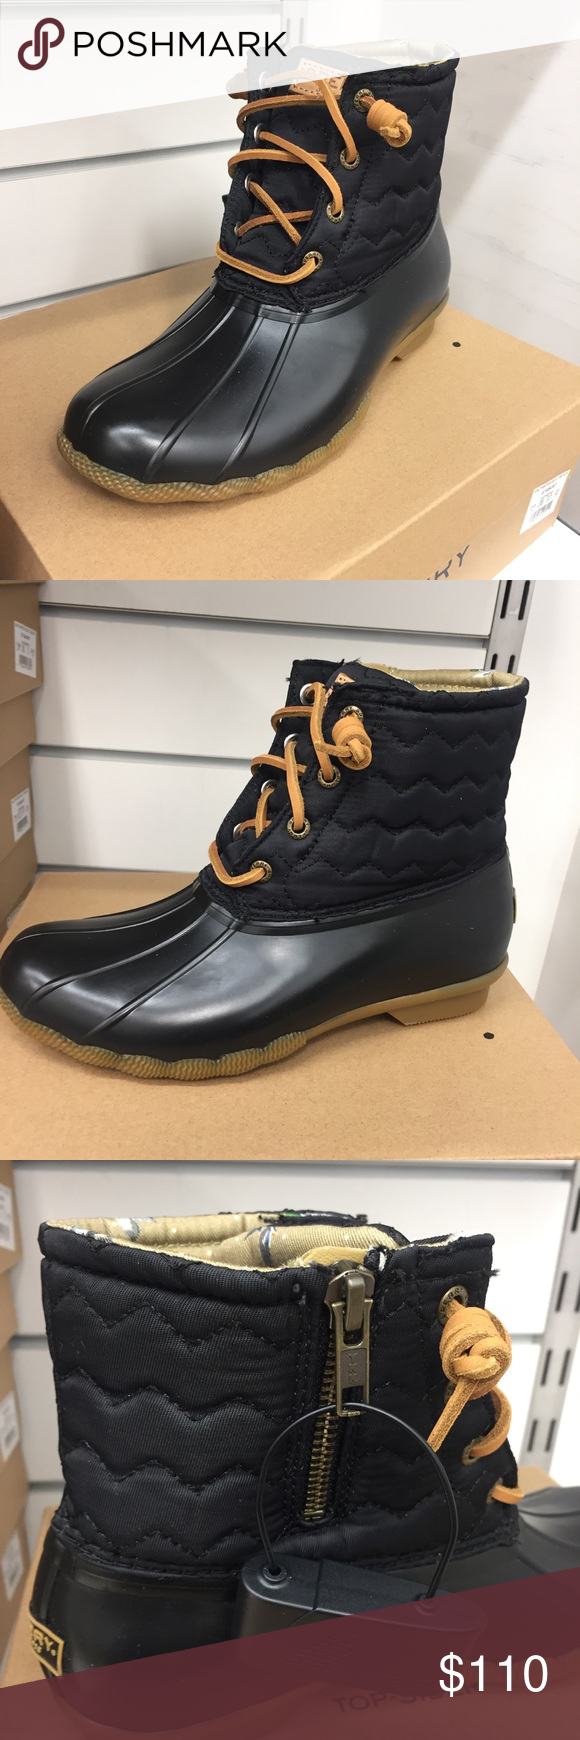 🥾Sperry Quilted Muck Boots🥾 in 2020